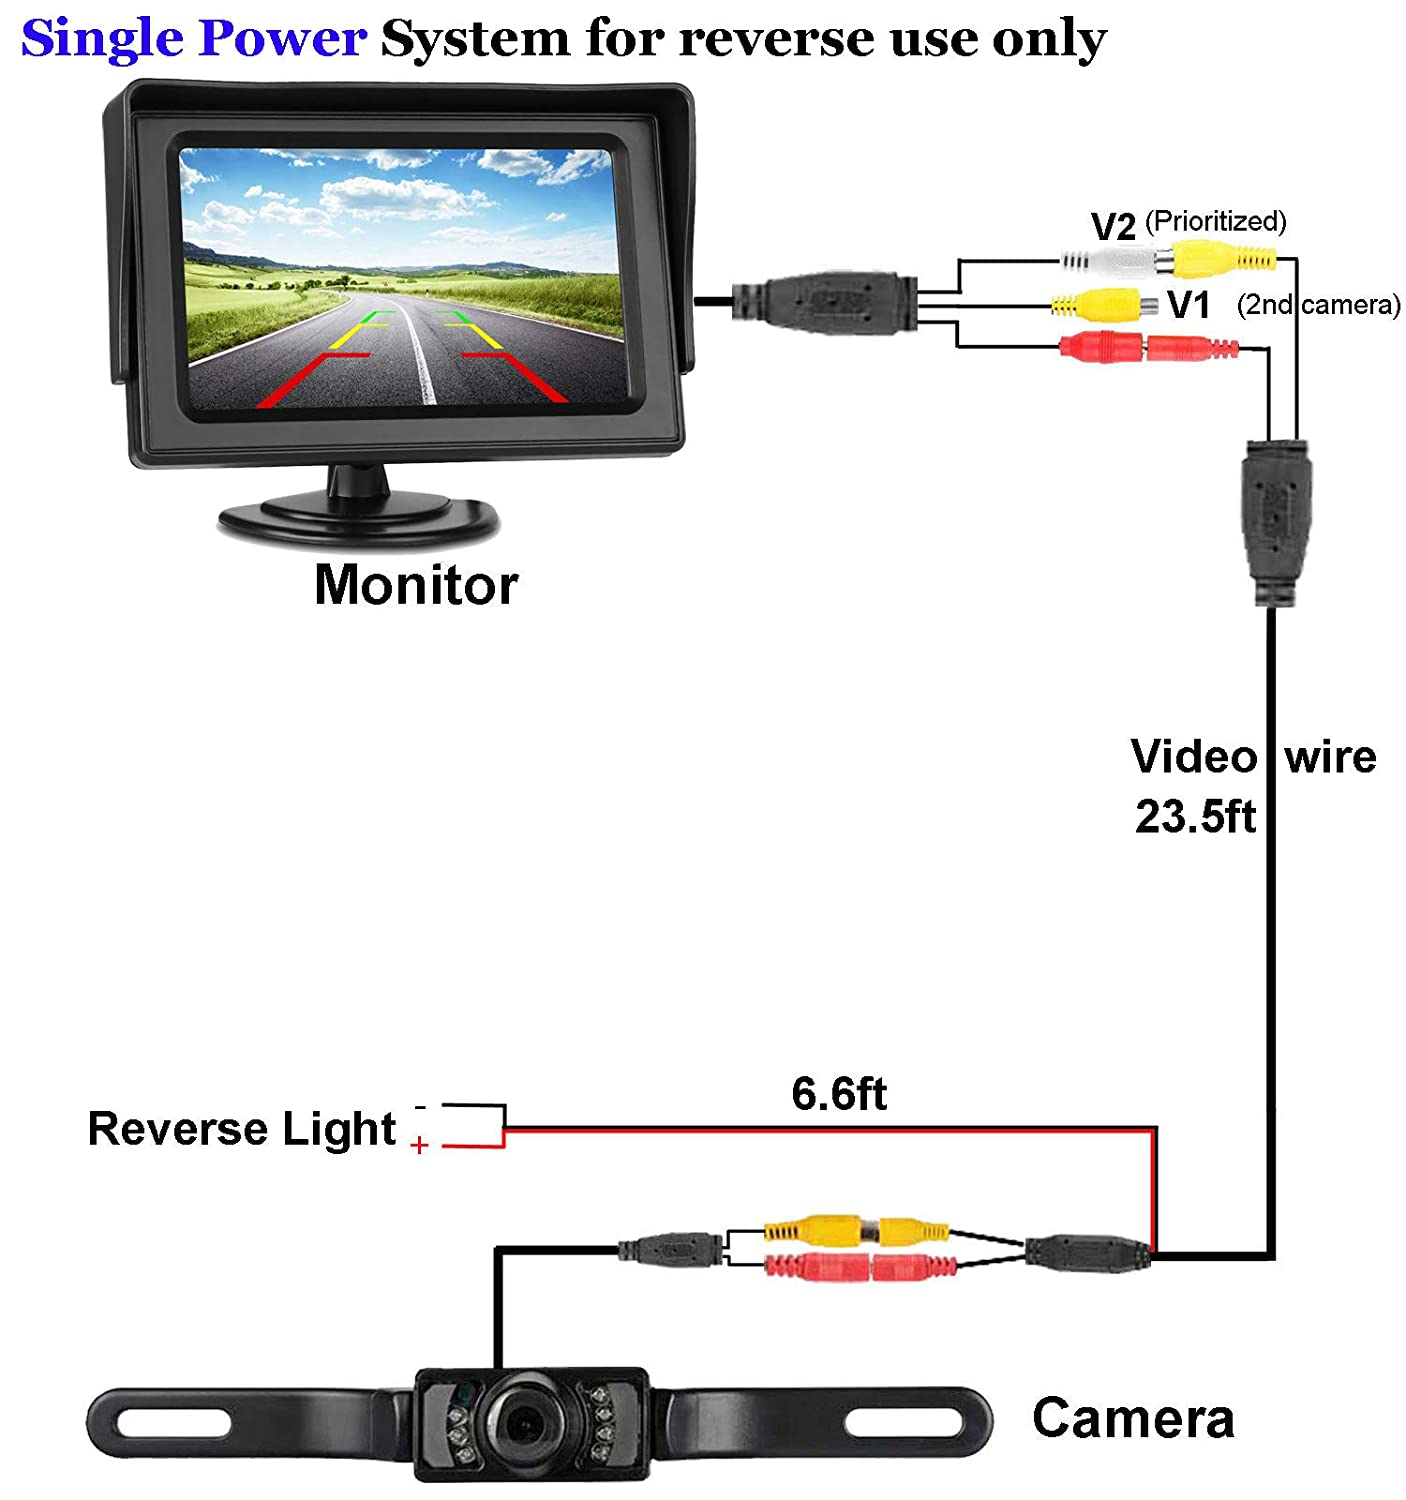 Istrong Backup Camera And Monitor Kit Wire Single Power Plcm7200 Wiring Diagram Supply For Whole System Rear View Constantly License Plate Reverse